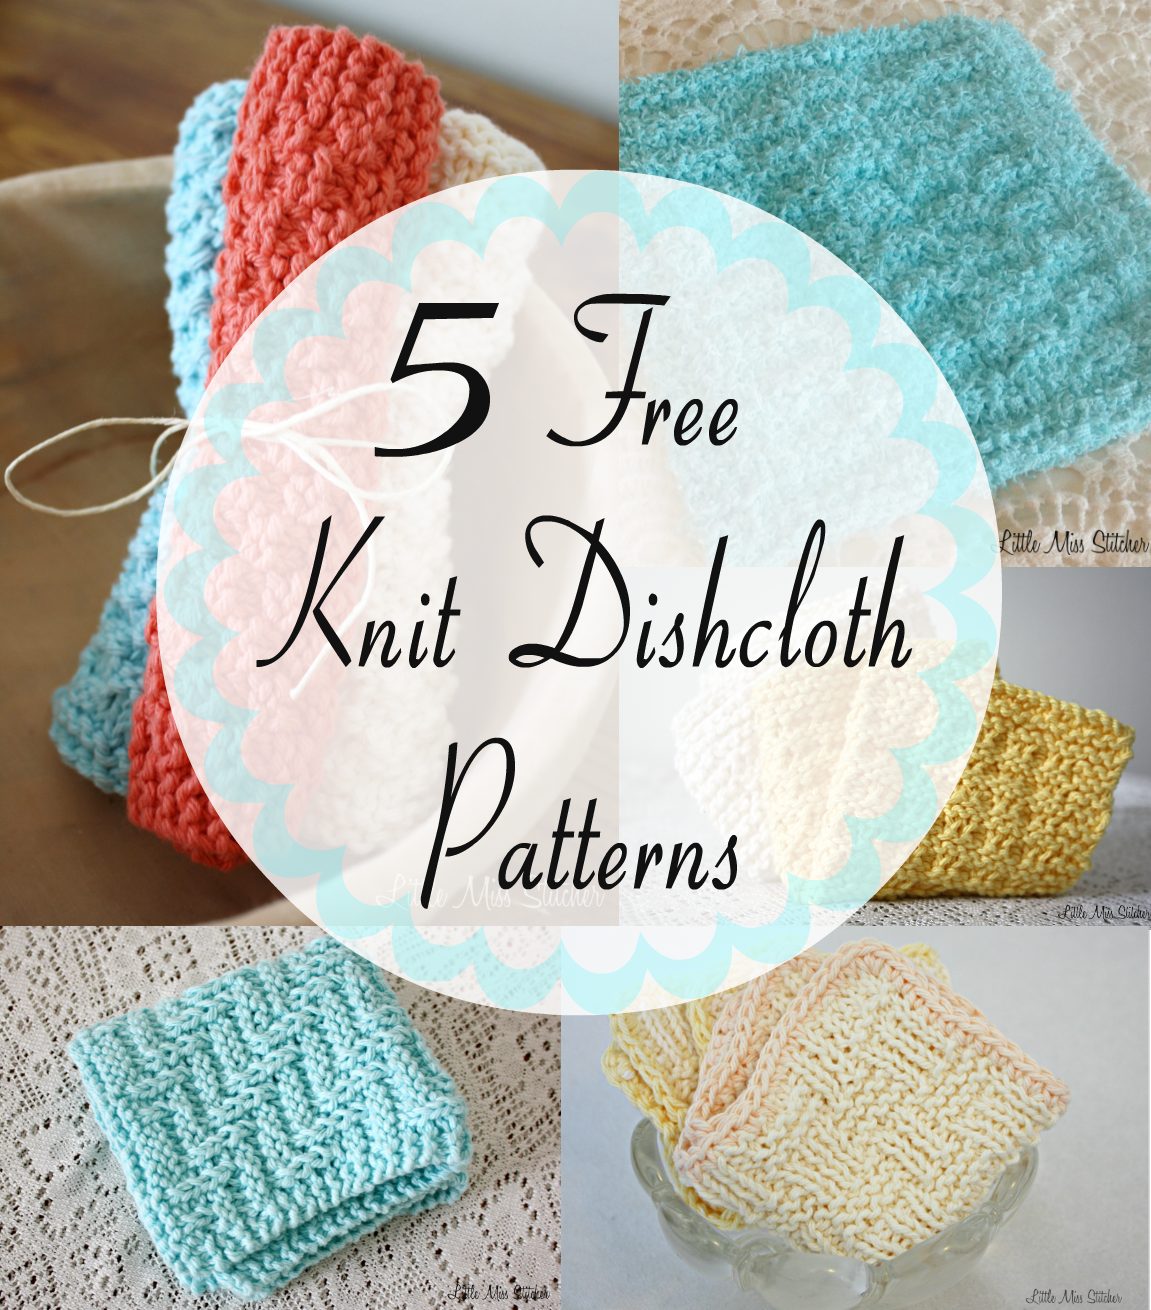 All Free Knitting Patterns For Babies : Little Miss Stitcher: 5 Free Knit Dishcloth Patterns